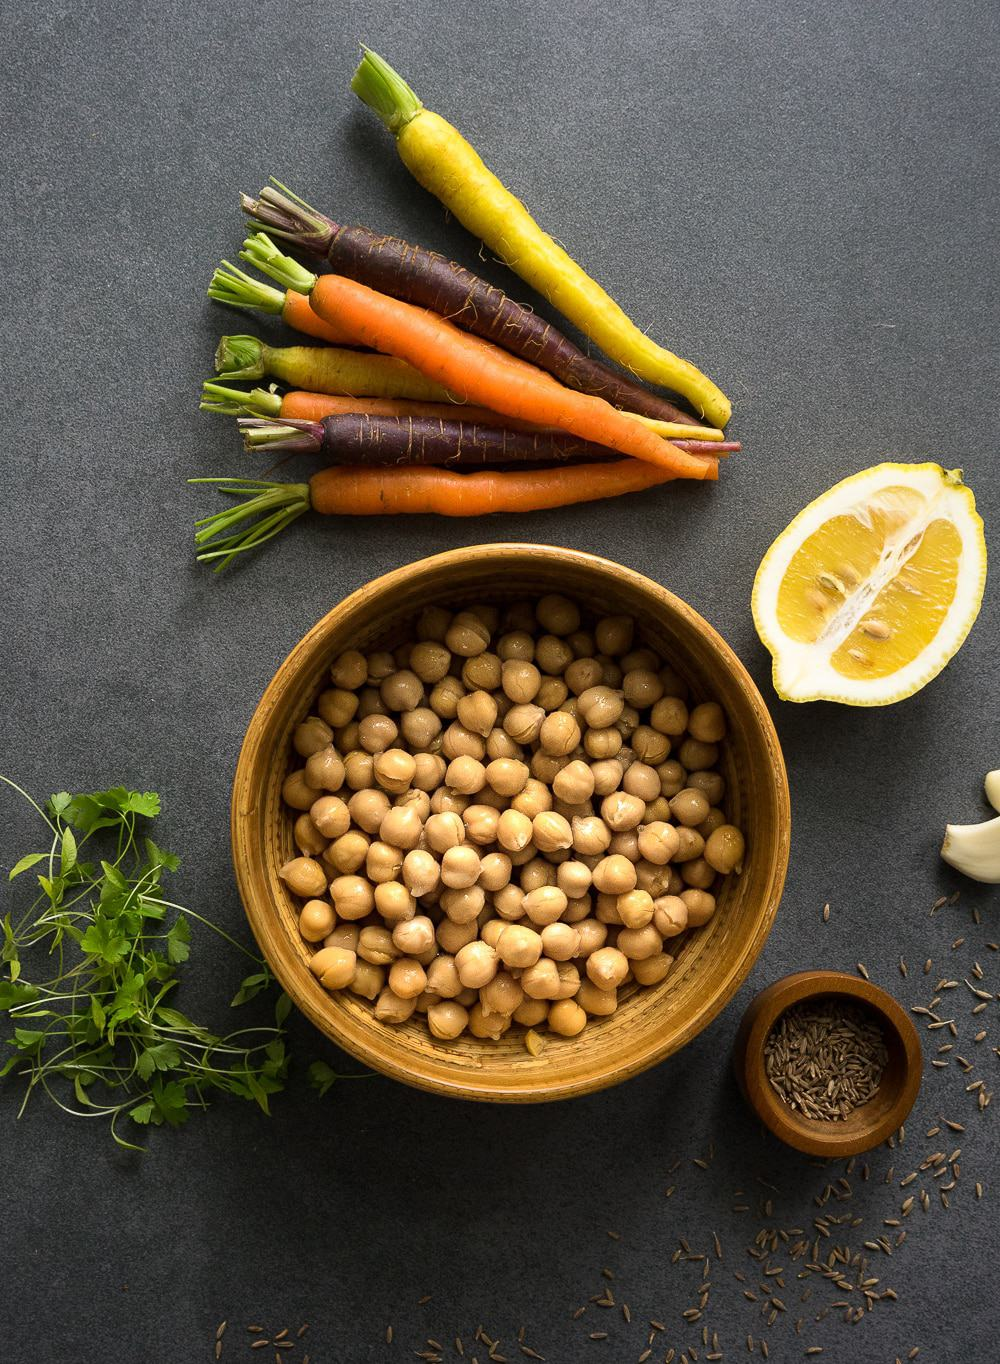 The perfect ingredients for an easy hummus recipe: chickpeas, lemon, garlic, tahini.